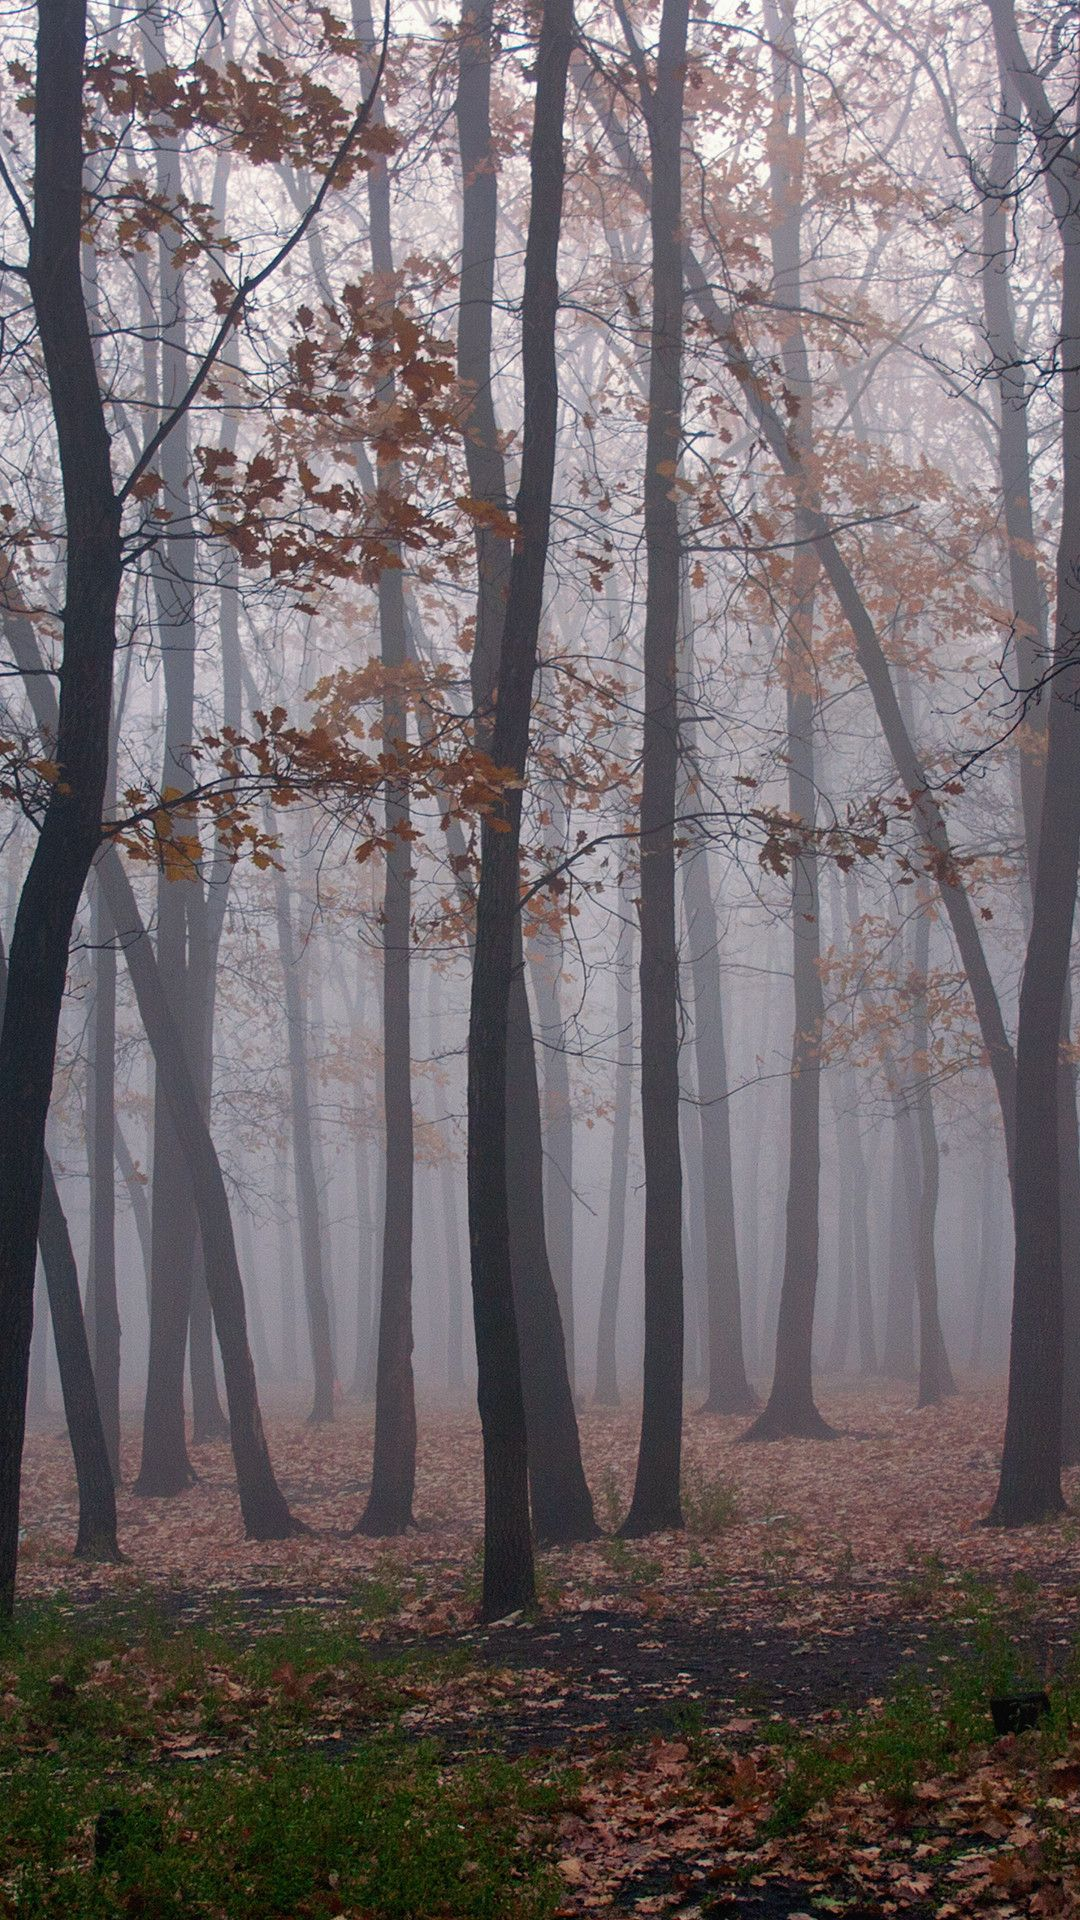 Foggy forest - Android, iPhone, Desktop HD Backgrounds / Wallpapers (1080p, 4k) (459129) - Nature / Landscapes